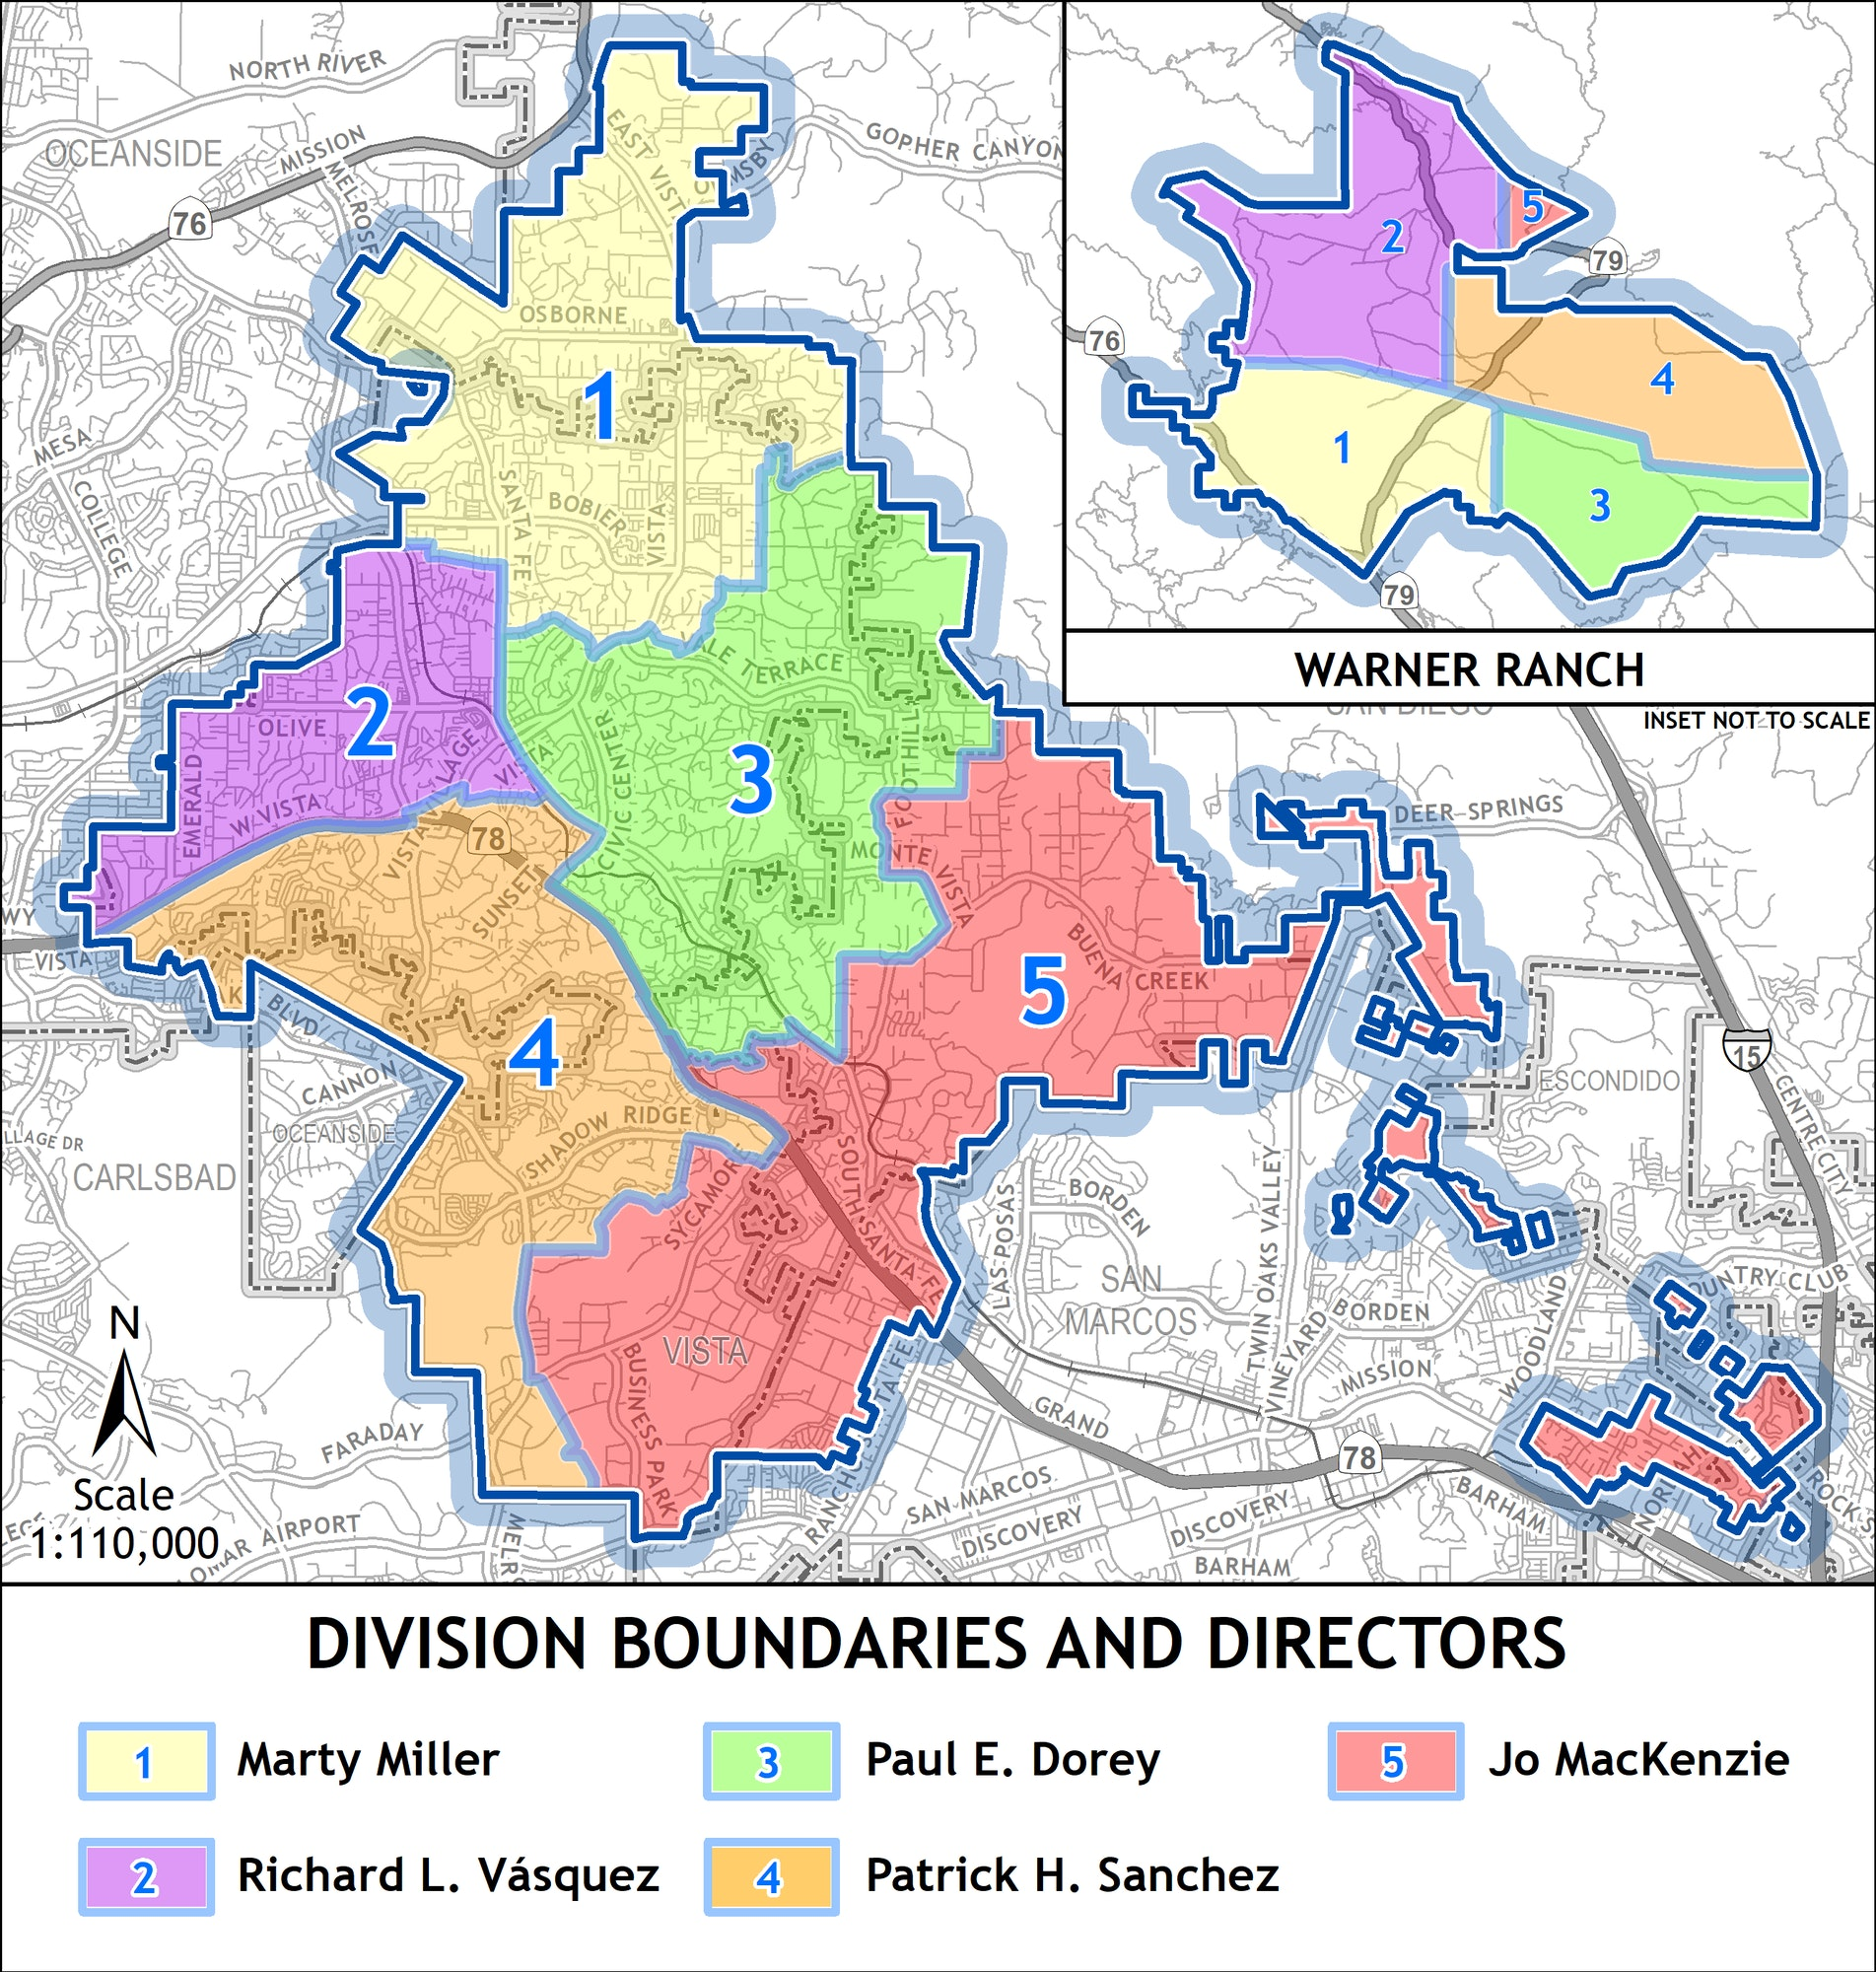 Map of service area identifying division boundaries and directors.